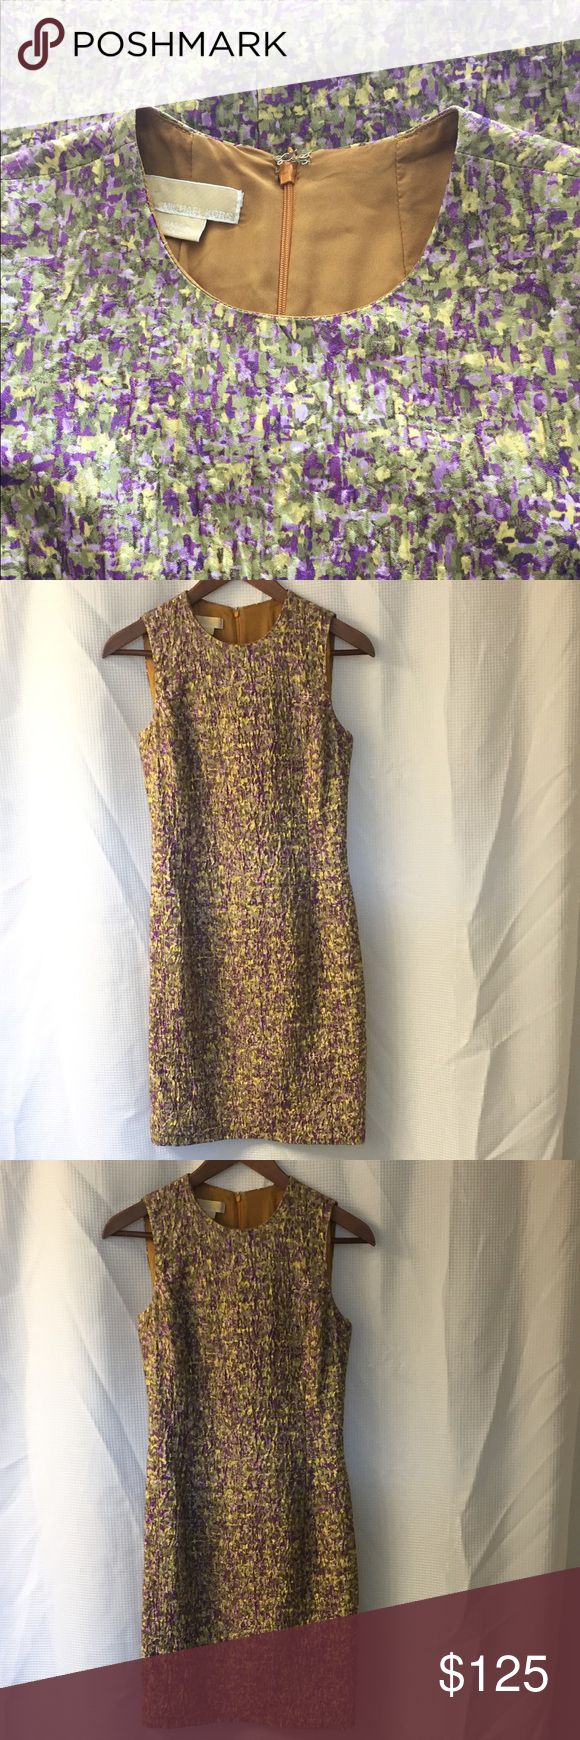 """NWOT Michael KORS Collection Sheath Camo Dress Stunning MICHAEL KORS MADE IN ITALY sheath dress. The is a well made dress with a beautiful green, yellow, and purple camouflage Print. New without tags. 36.5"""" long, 30"""" chest, Michael Kors Dresses"""